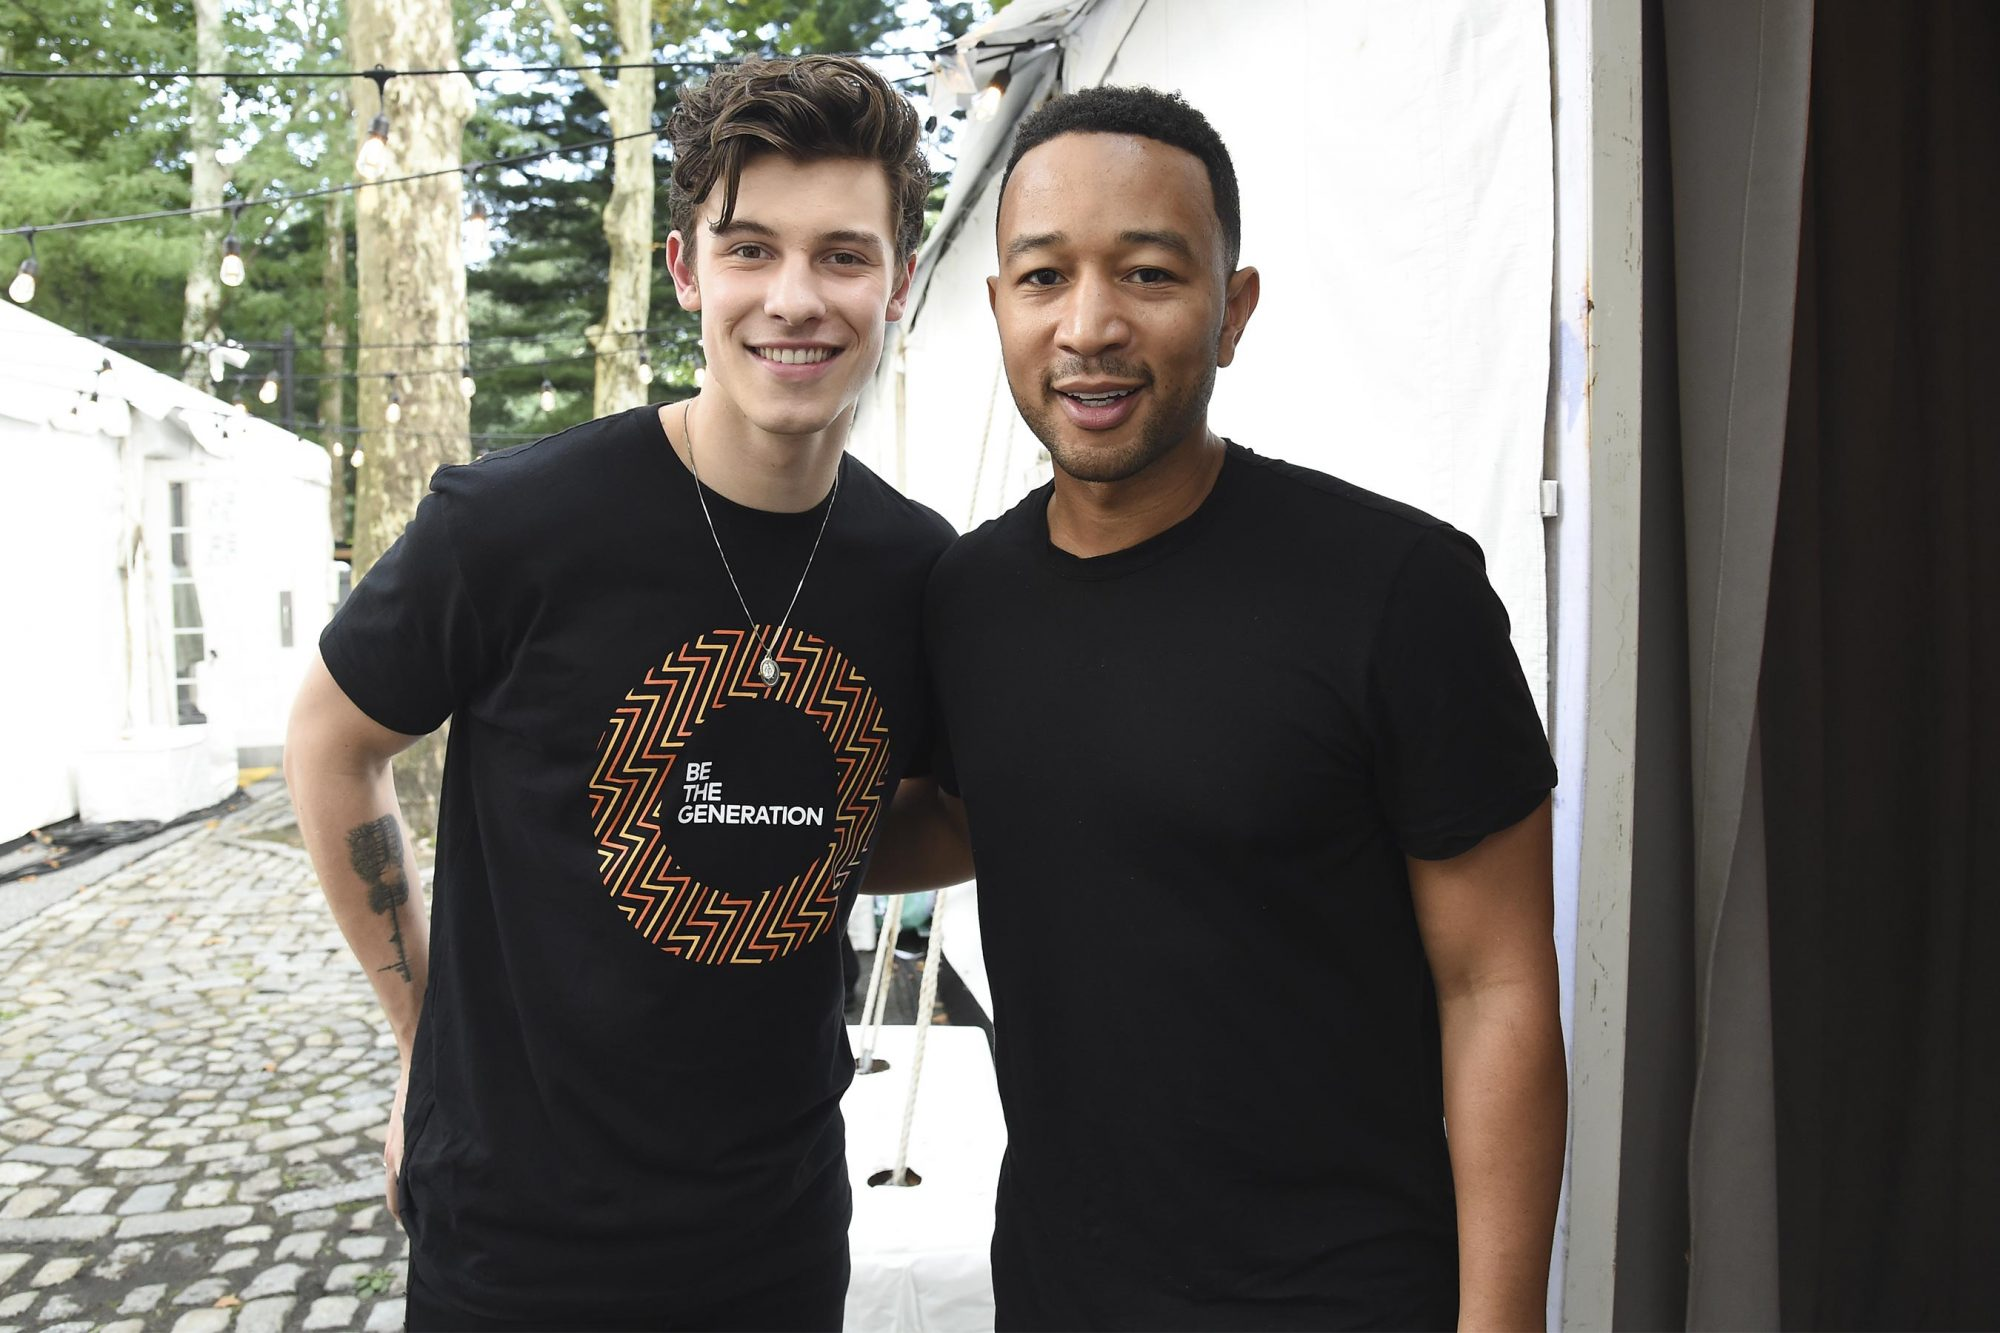 2018 Global Citizen Festival: Be The Generation - Backstage